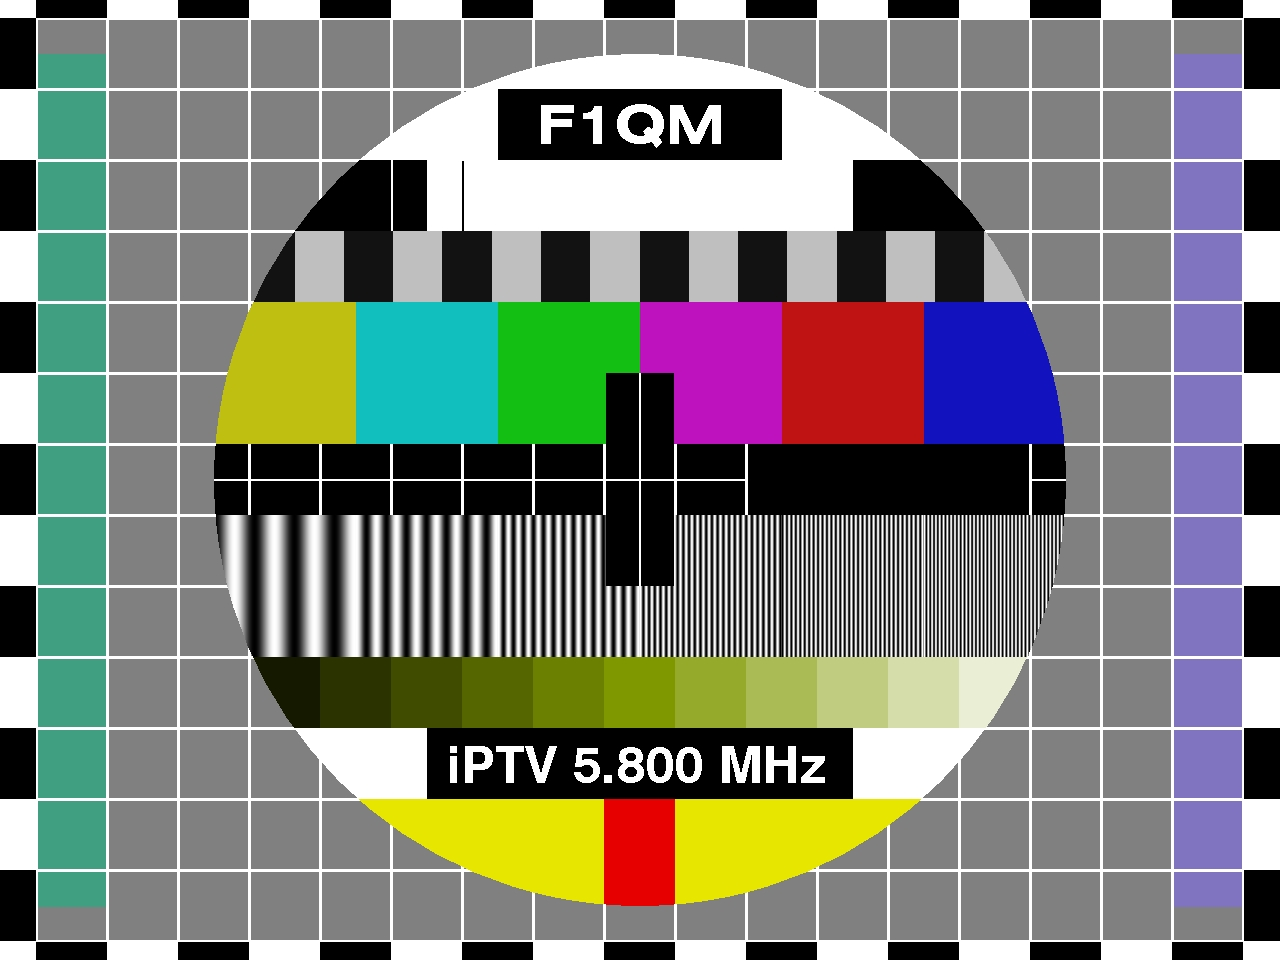 Mire_TV_color_patern_F1QM_Mire_Couleur_4-3